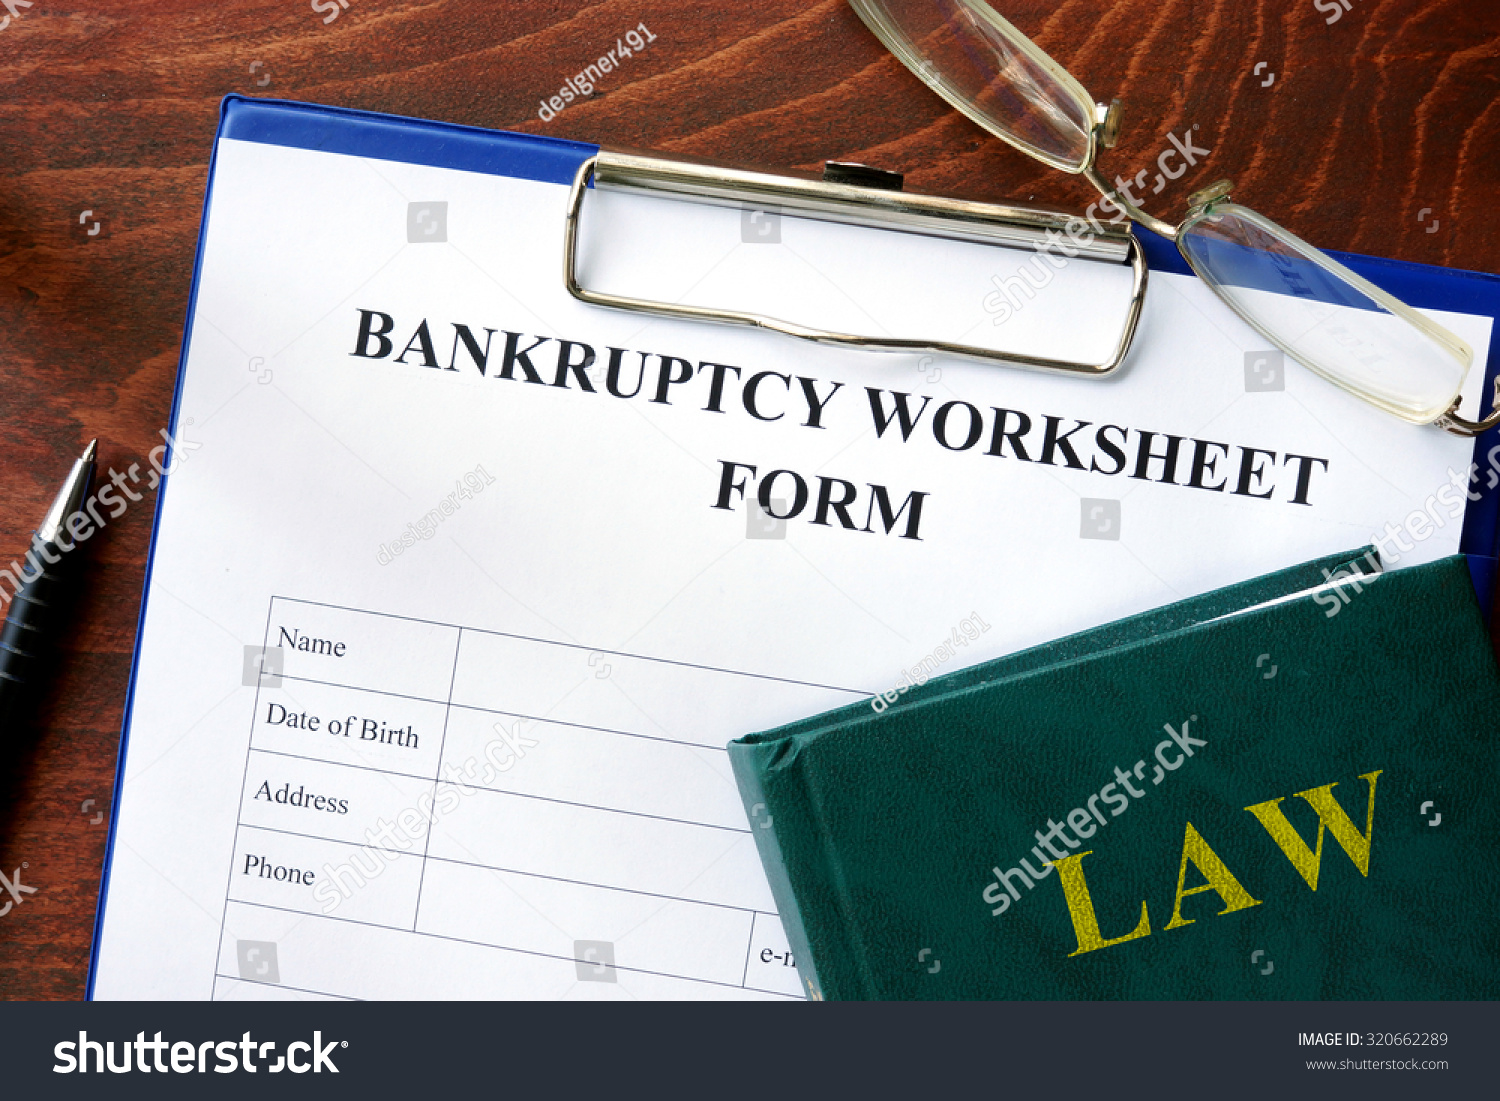 worksheet. Bankruptcy Worksheet. Montrealsocialmedia ...